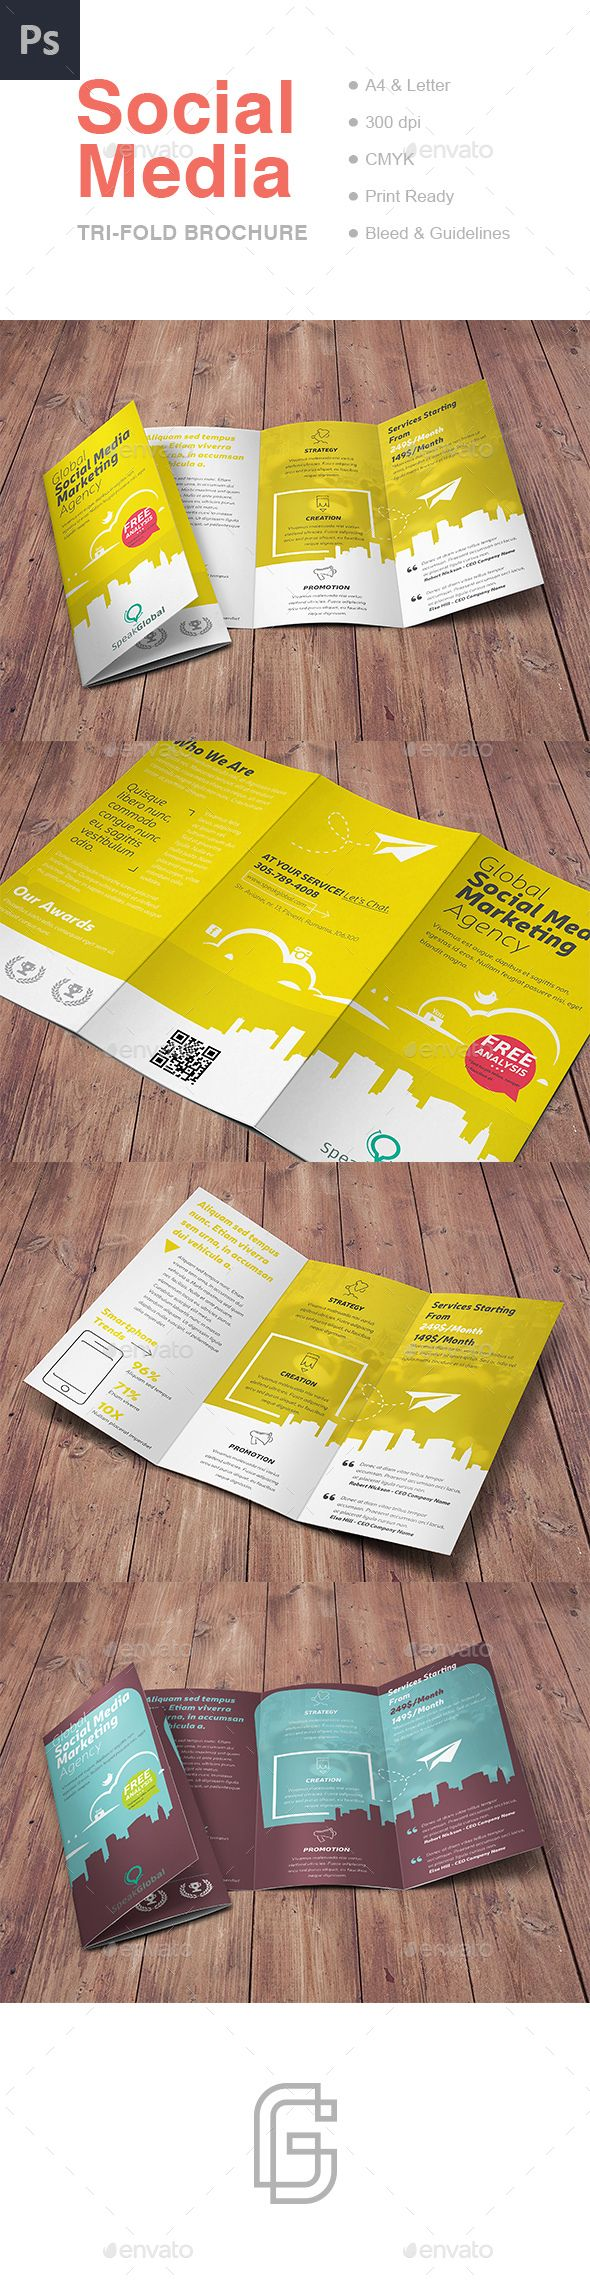 Social Media TriFold Brochure — Photoshop PSD #advertising #media • Download ➝ https://graphicriver.net/item/social-media-trifold-brochure/19165646?ref=pxcr